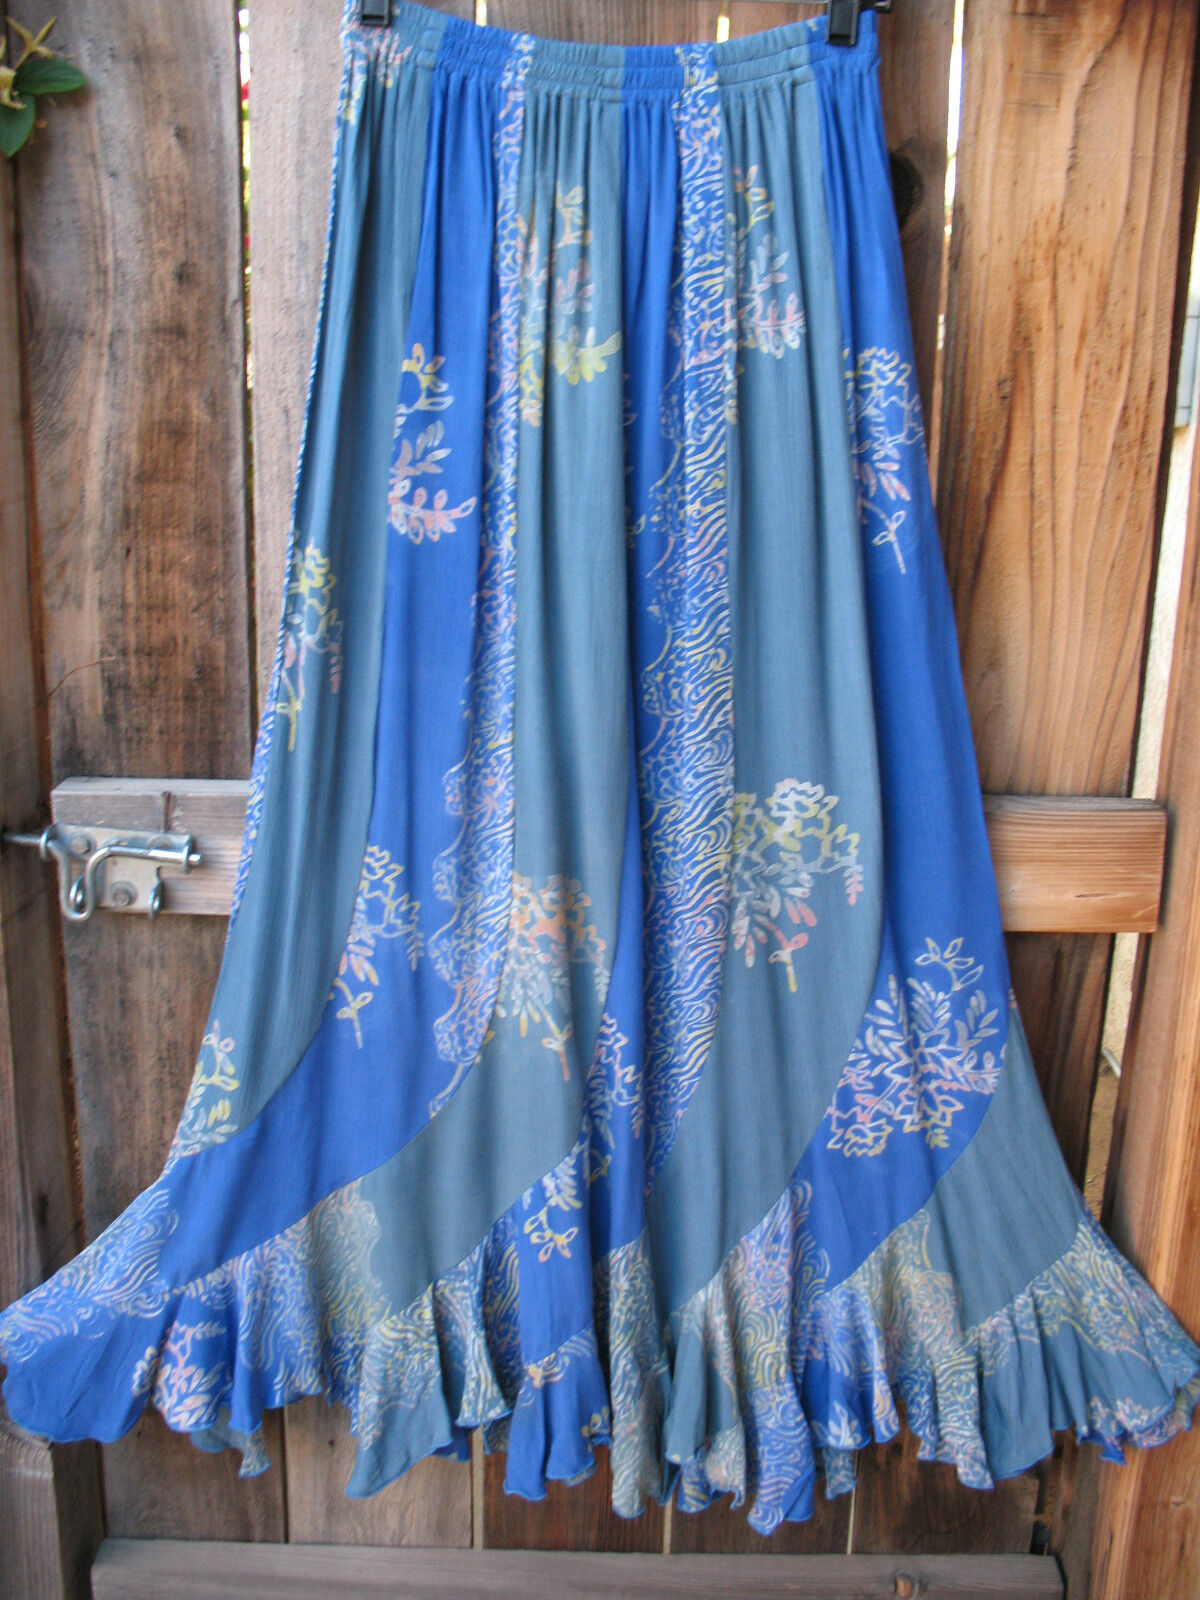 ART TO WEAR MISSION CANYON FLIRTY 30 SKIRT IN ALL NEW RIVER blueE, OS, NWT